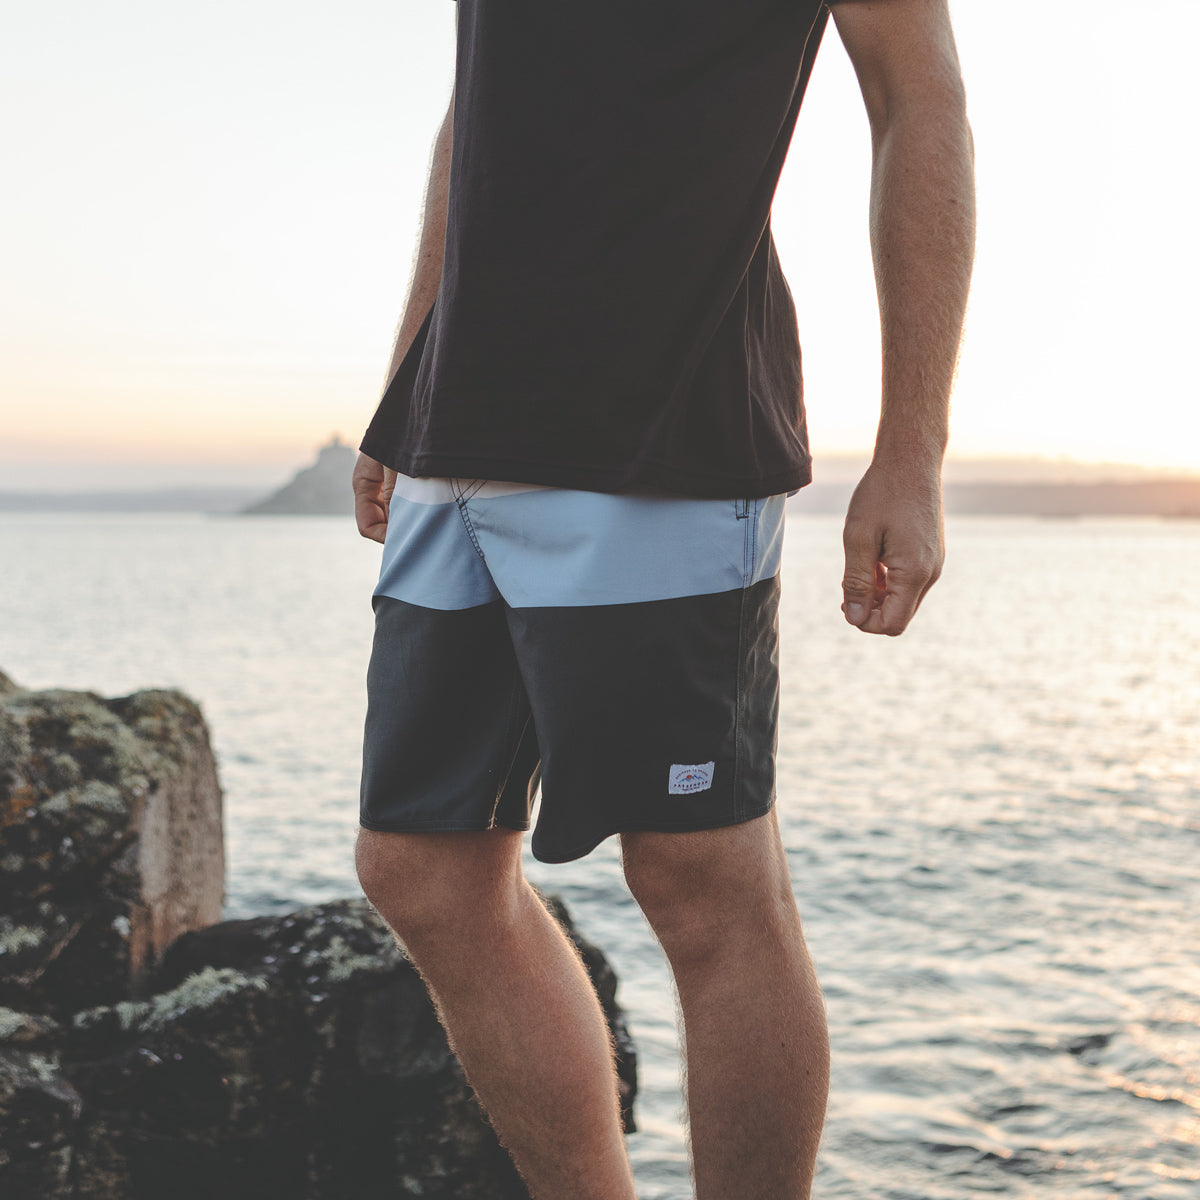 Lineup Hybrid Shorts - Dark Grey image 6